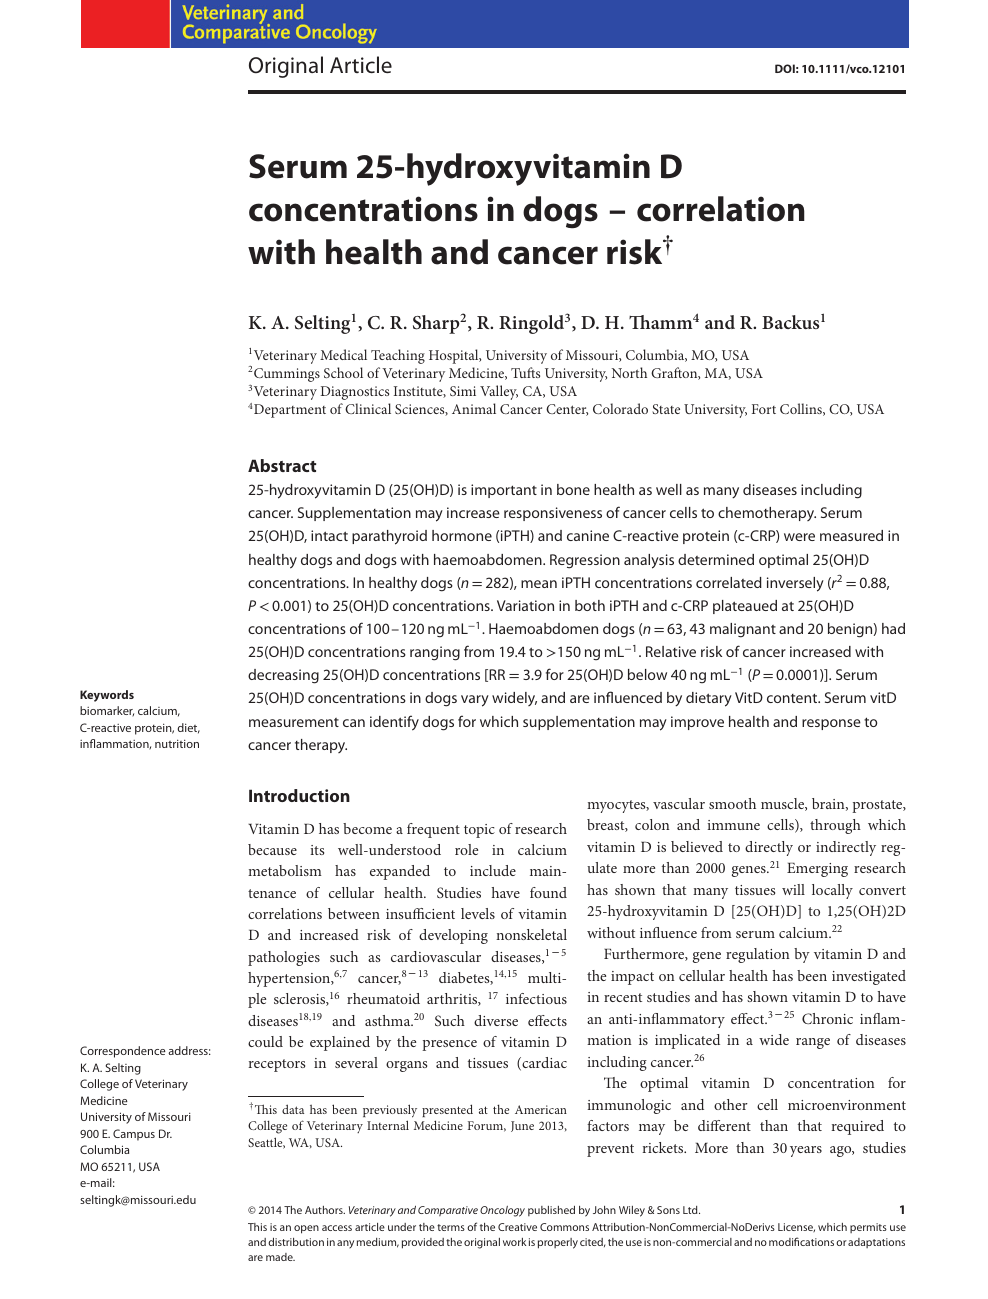 Serum 25-hydroxyvitamin D concentrations in dogs